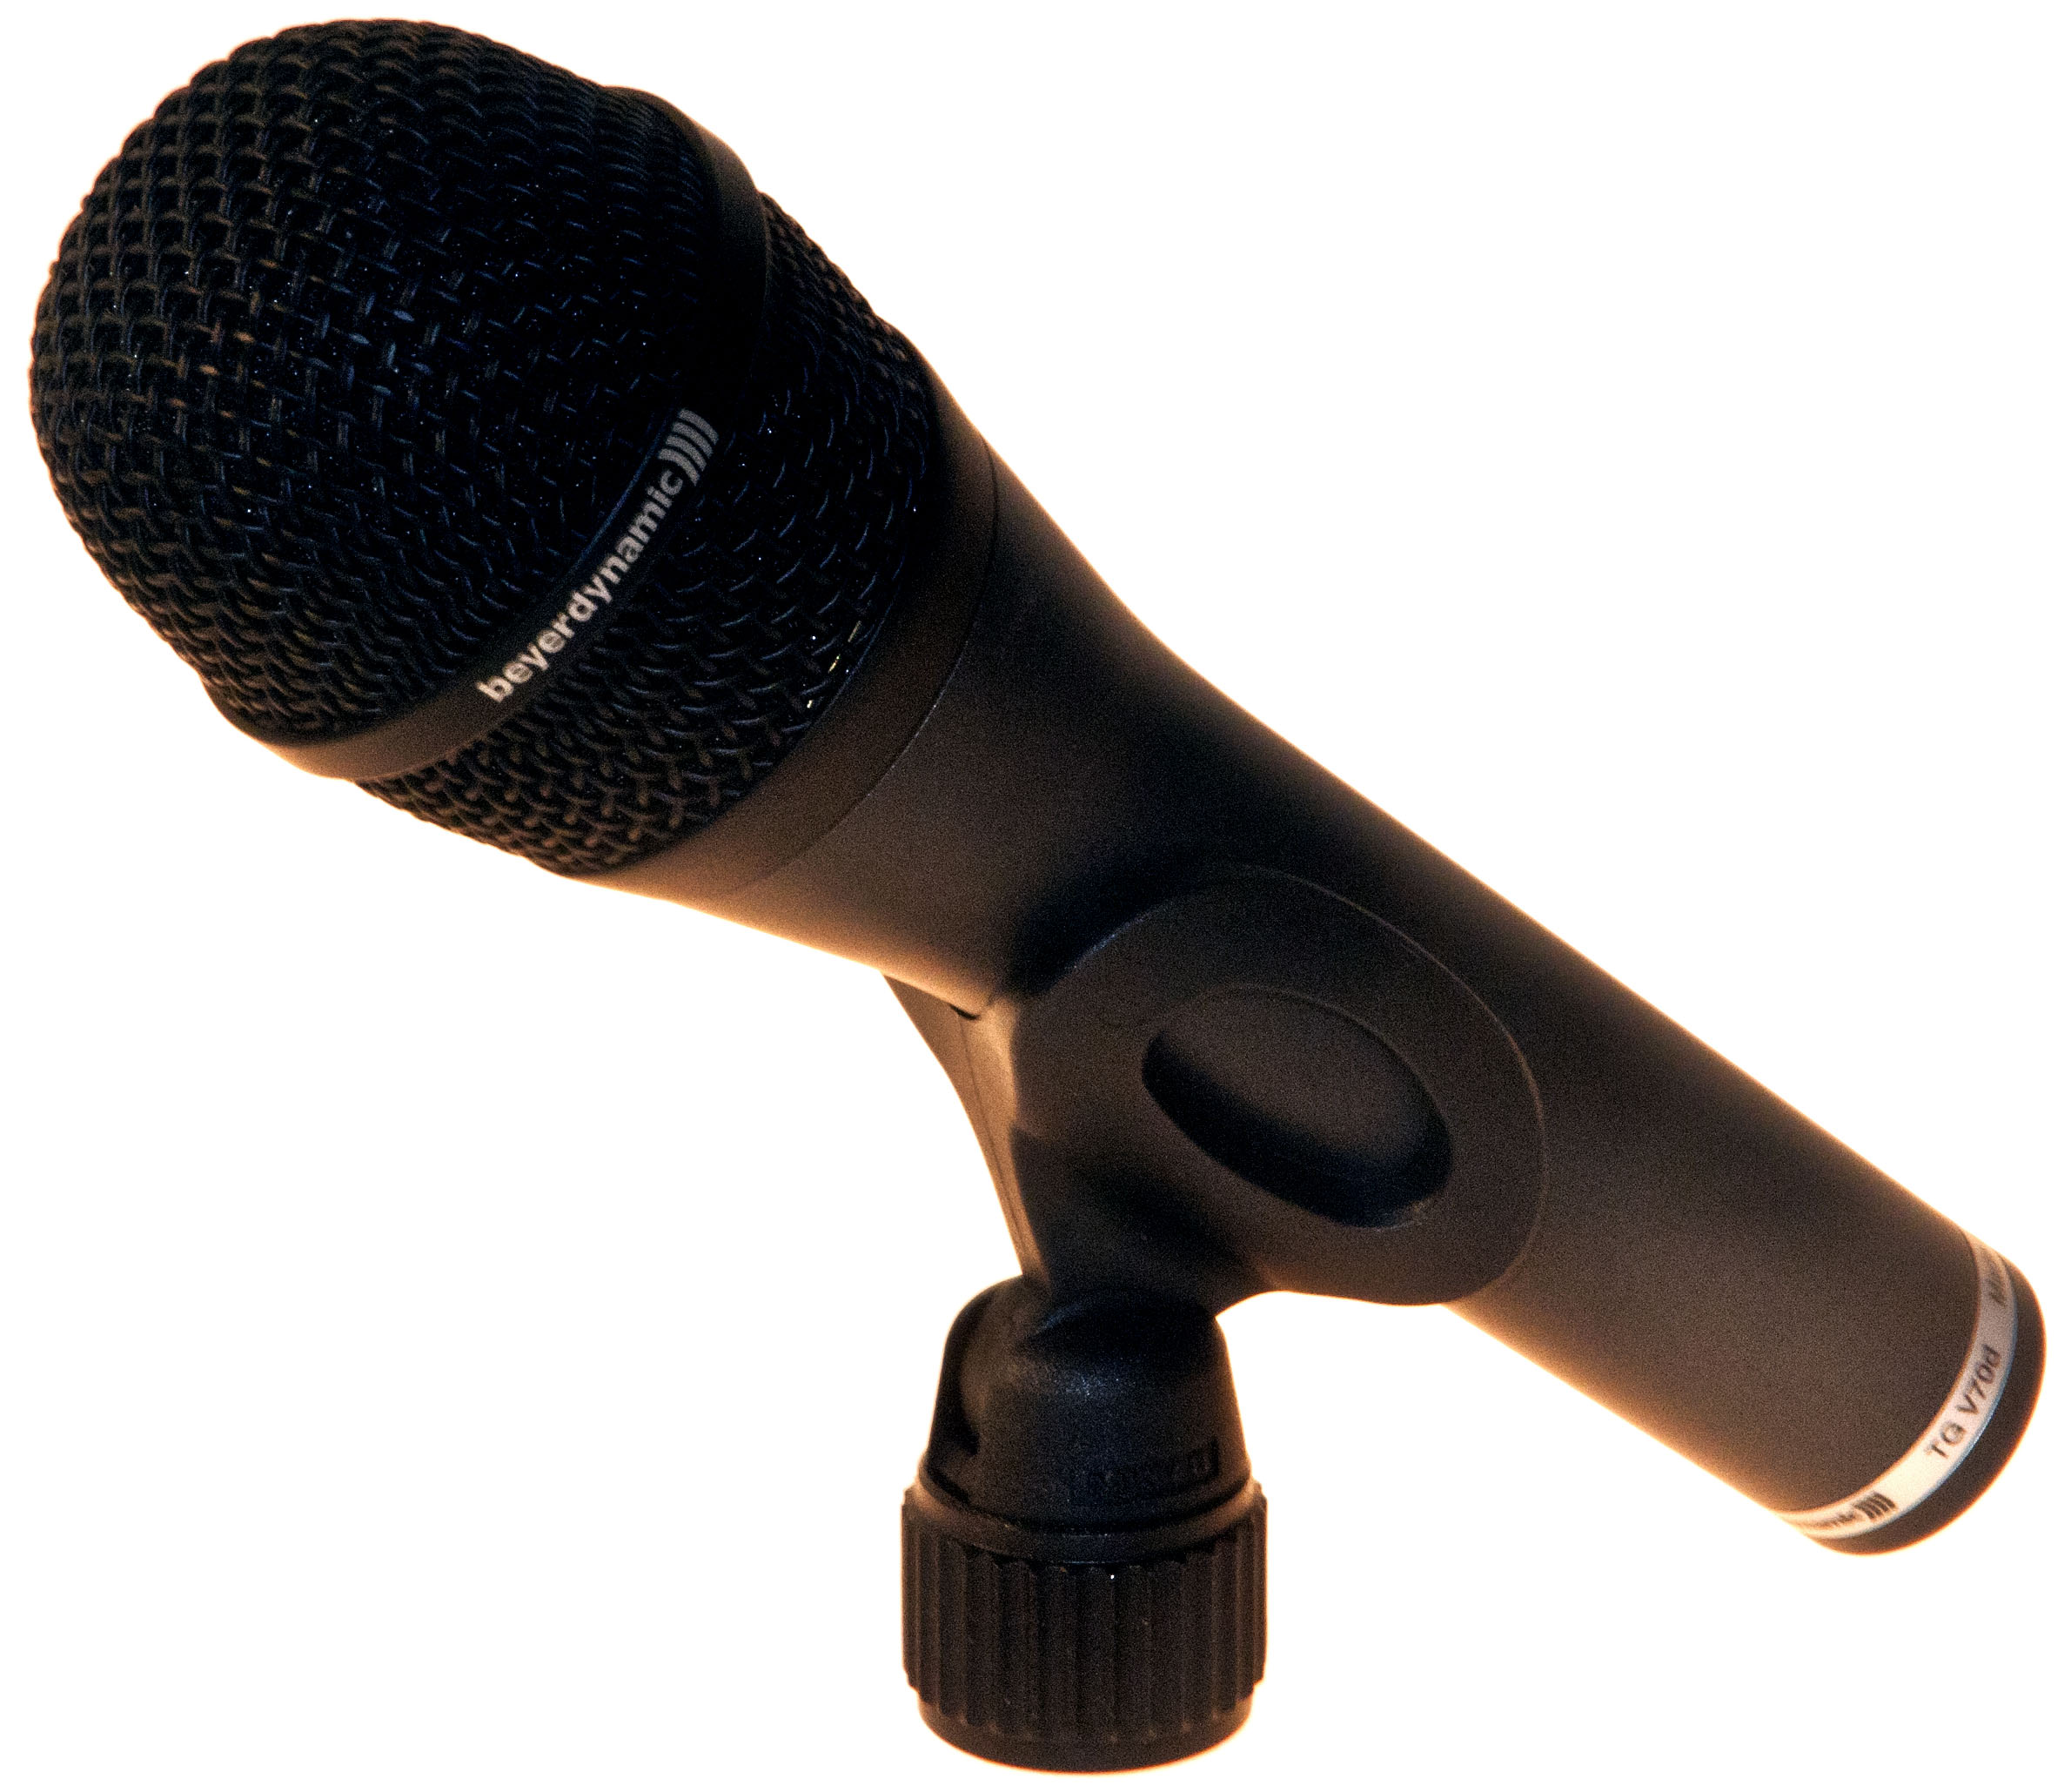 Beyerdynamic Tg V70d Sound Light Rental Event Media Studio Electret Microphone To Xlr Wiring Together With Sc4060 Dpa Microphones Is A Dynamic Hypercardioid Characteristic